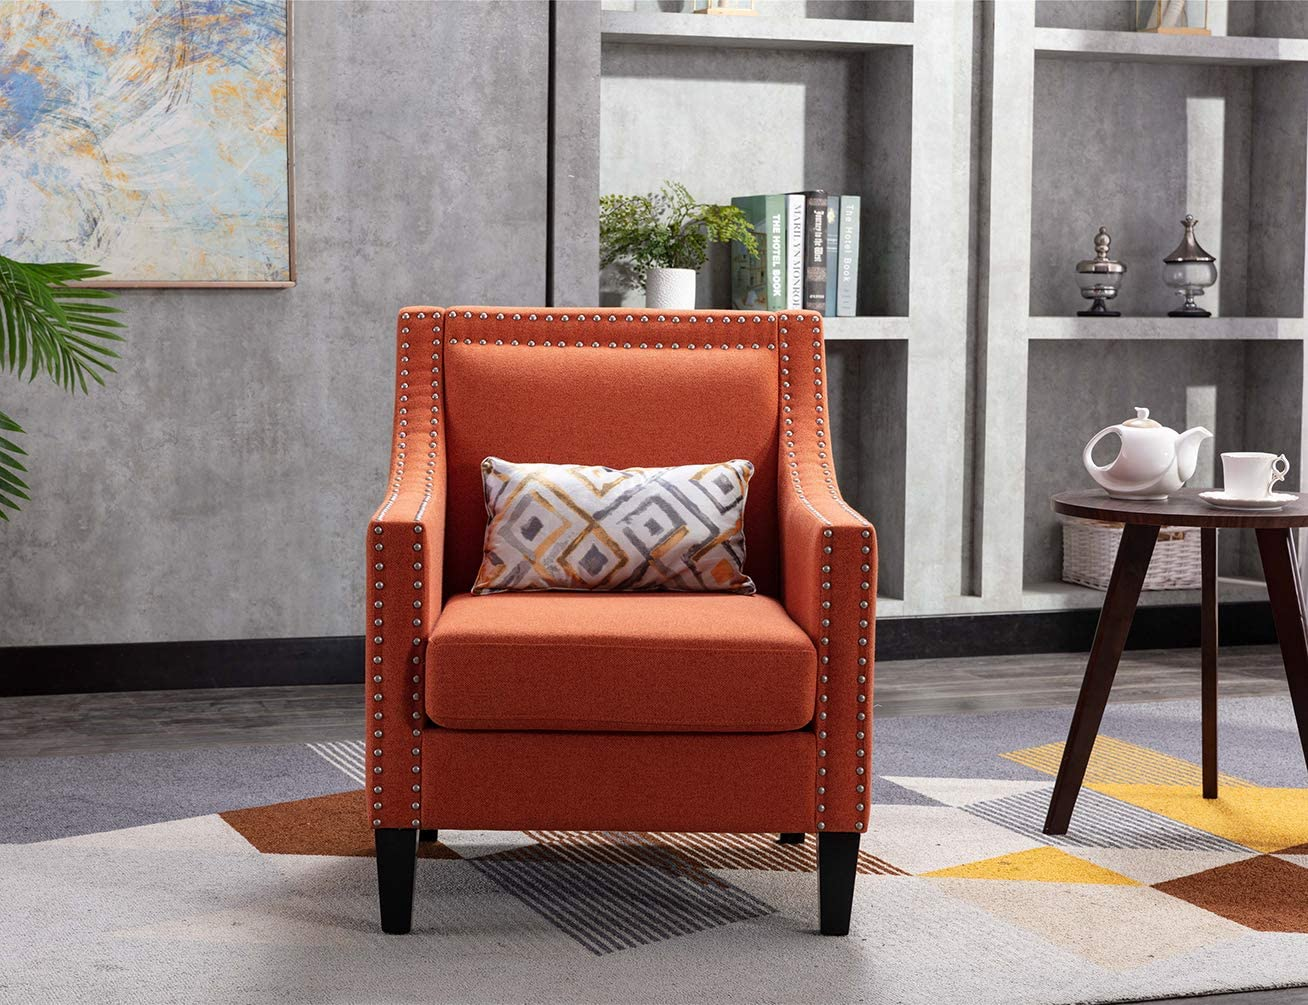 Accent Chair with Small Pillow, Mid Century Armchair with Decorative Nailheads and Solid Wooden Legs, Modern Chairs for Living Room and Bedroom, Orange